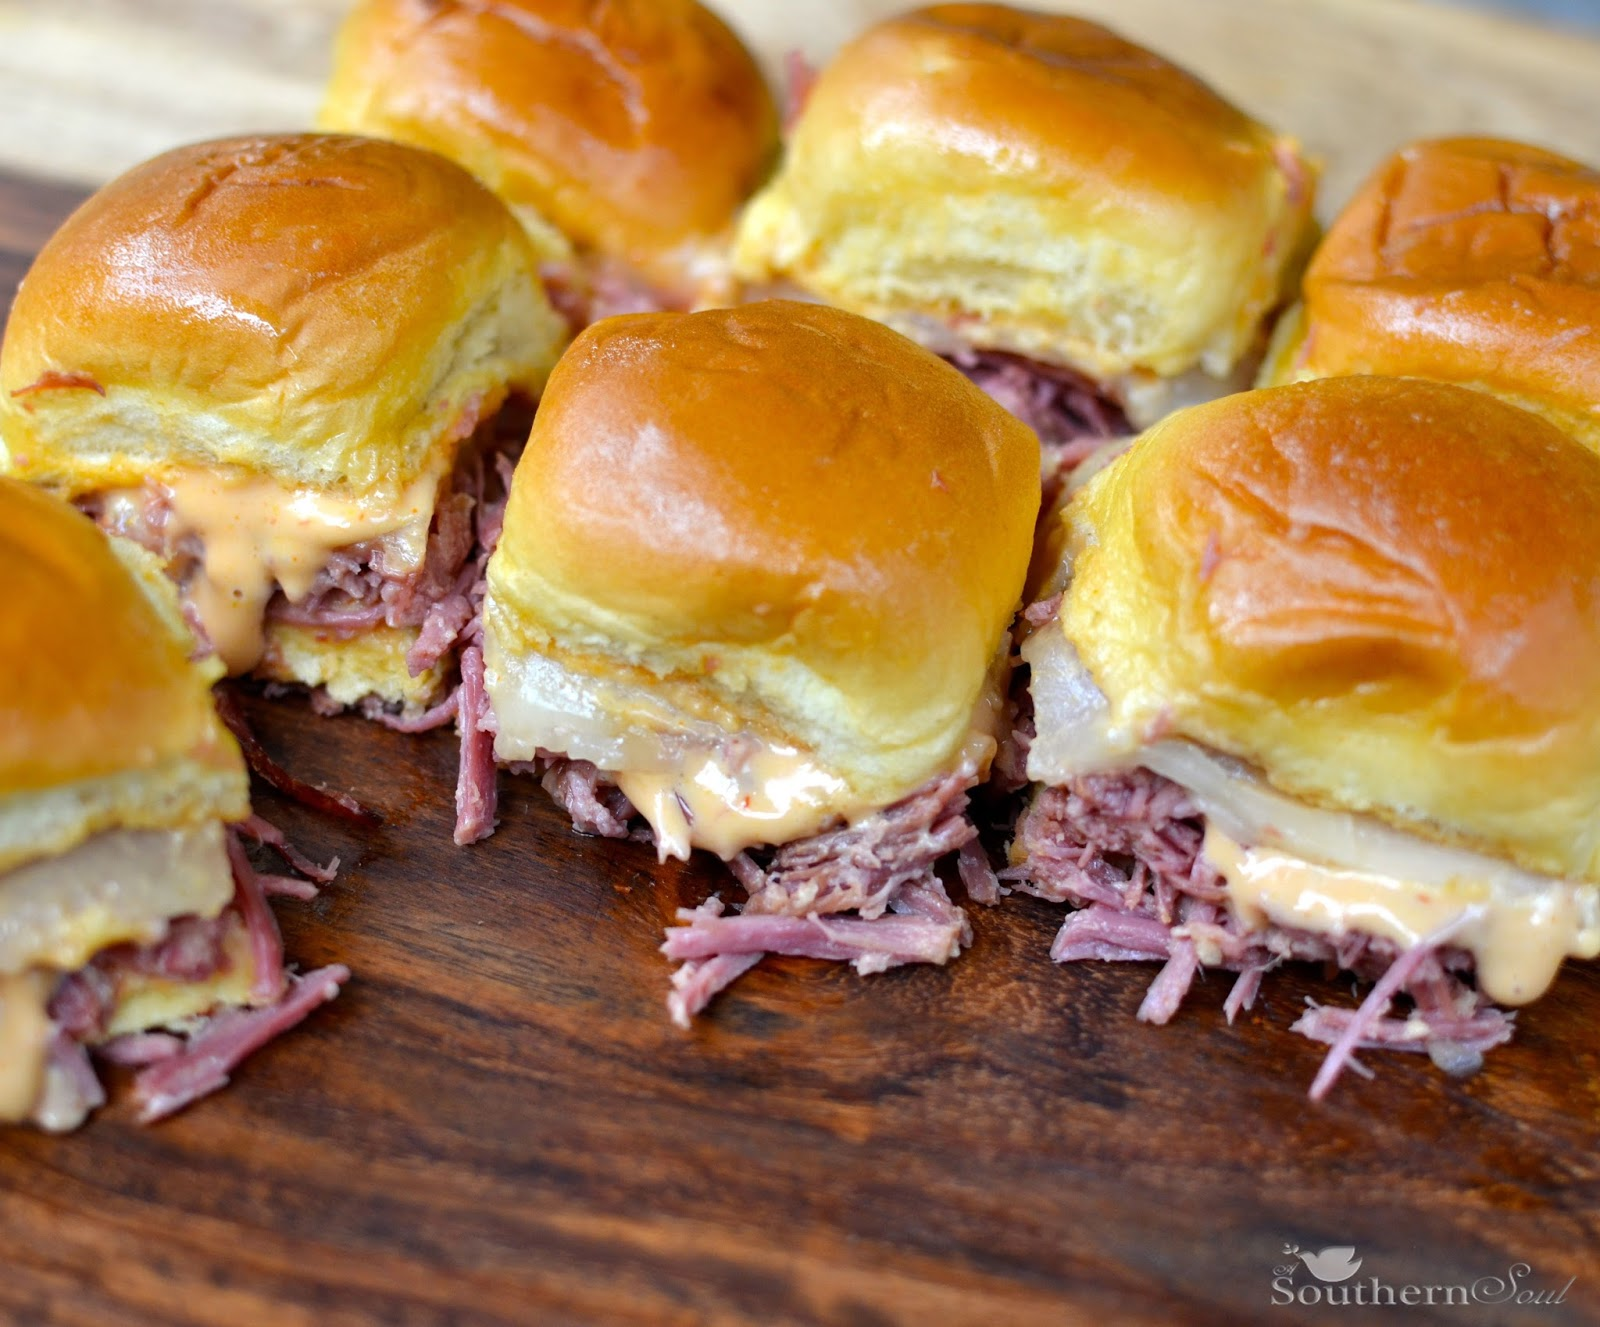 Southern Soul: Slow Cooker Corned Beef Reuben Sliders